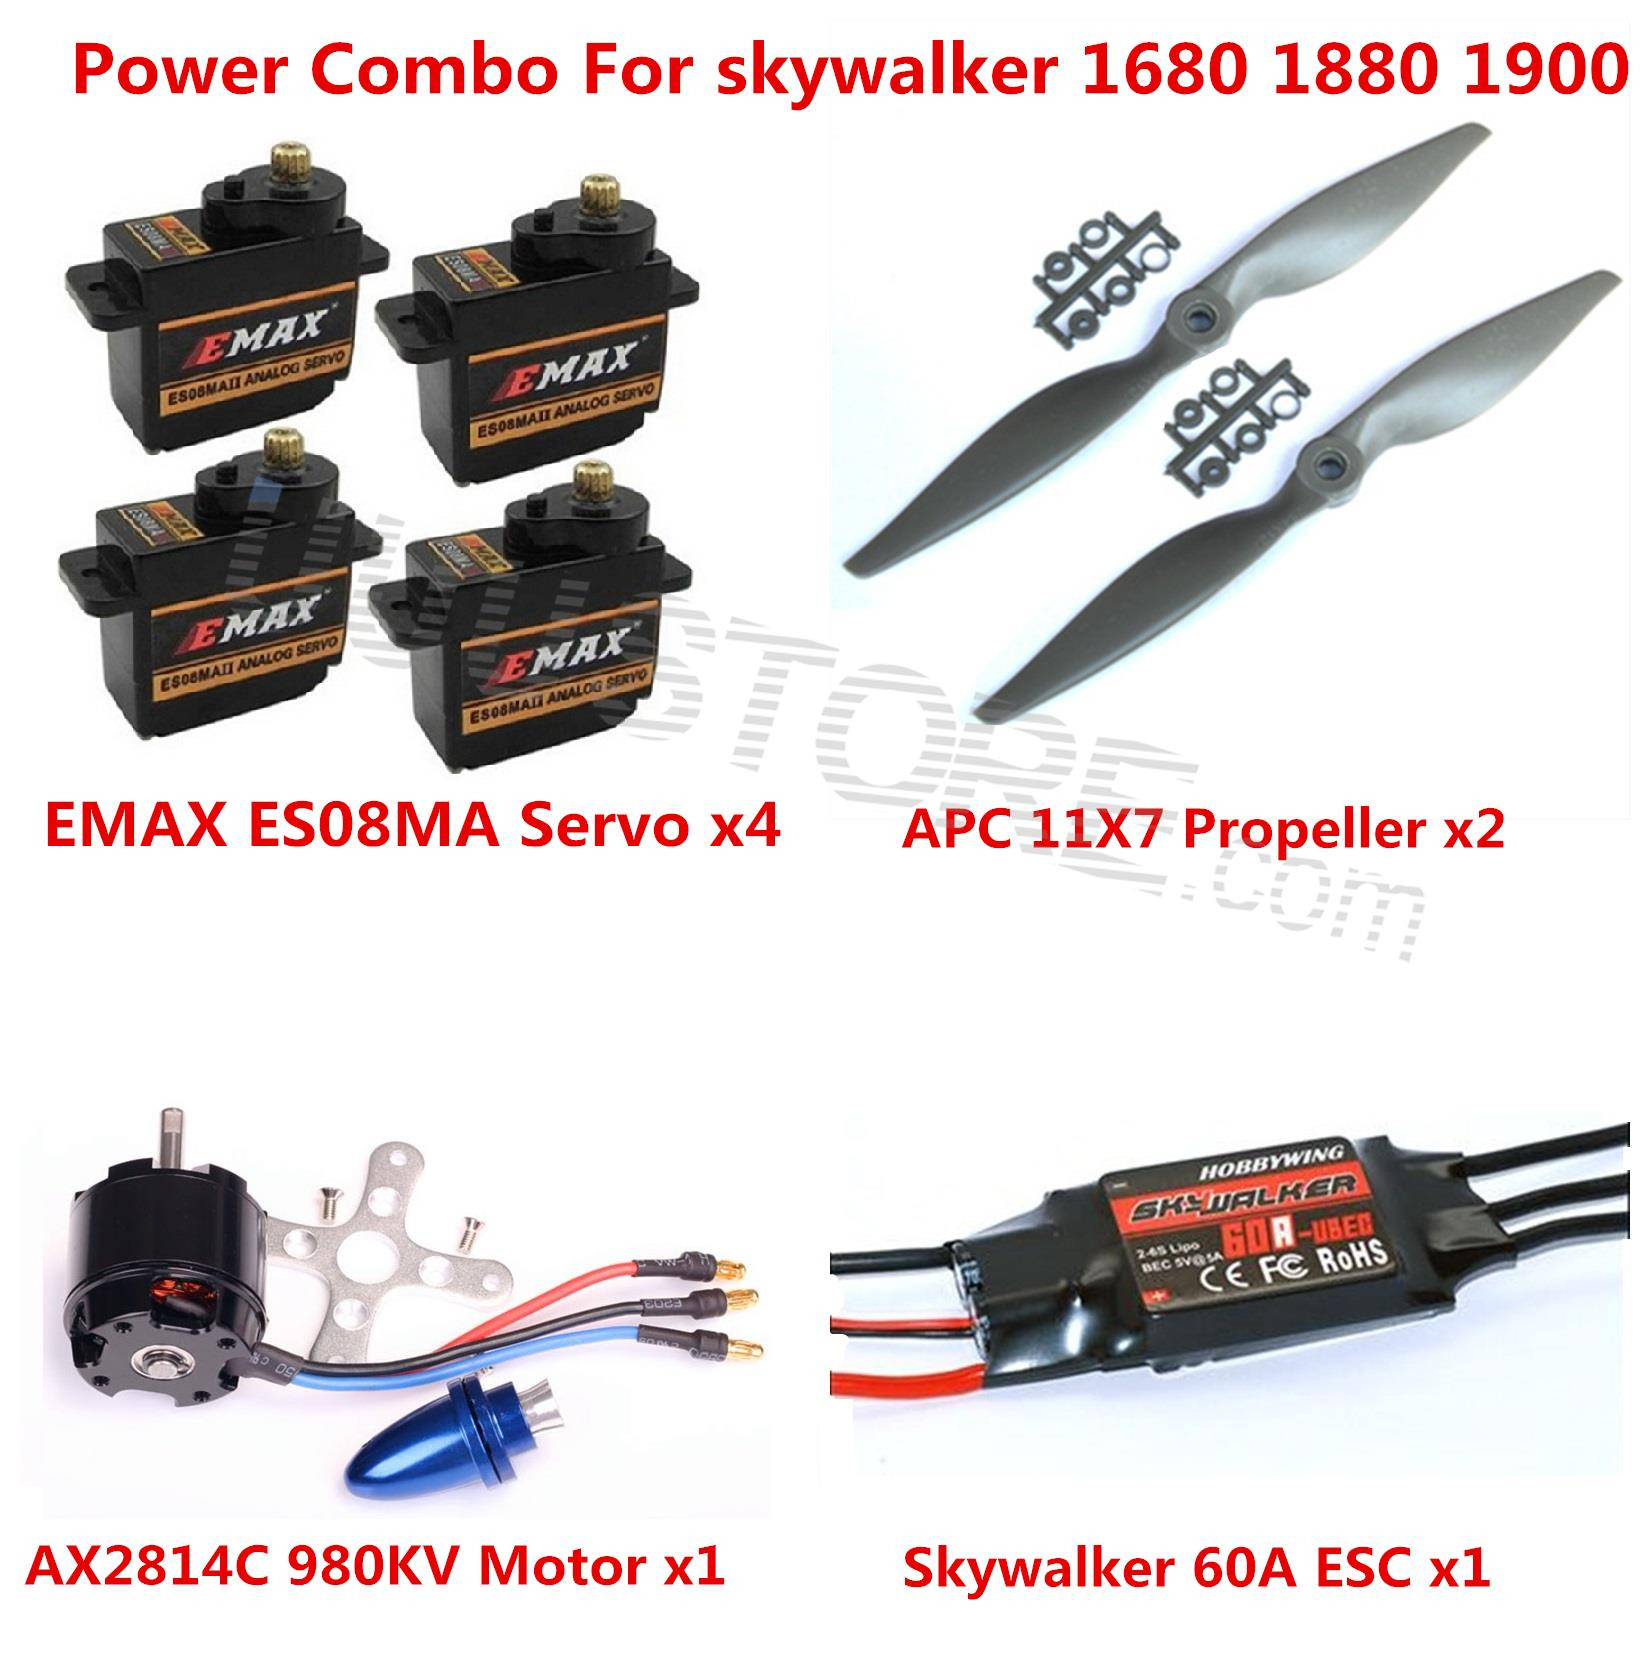 Power Combo Kit For Skywalker 1680 1880 1900 EPO RC Airplane Motor ESC Props and Servos<br><br>Aliexpress